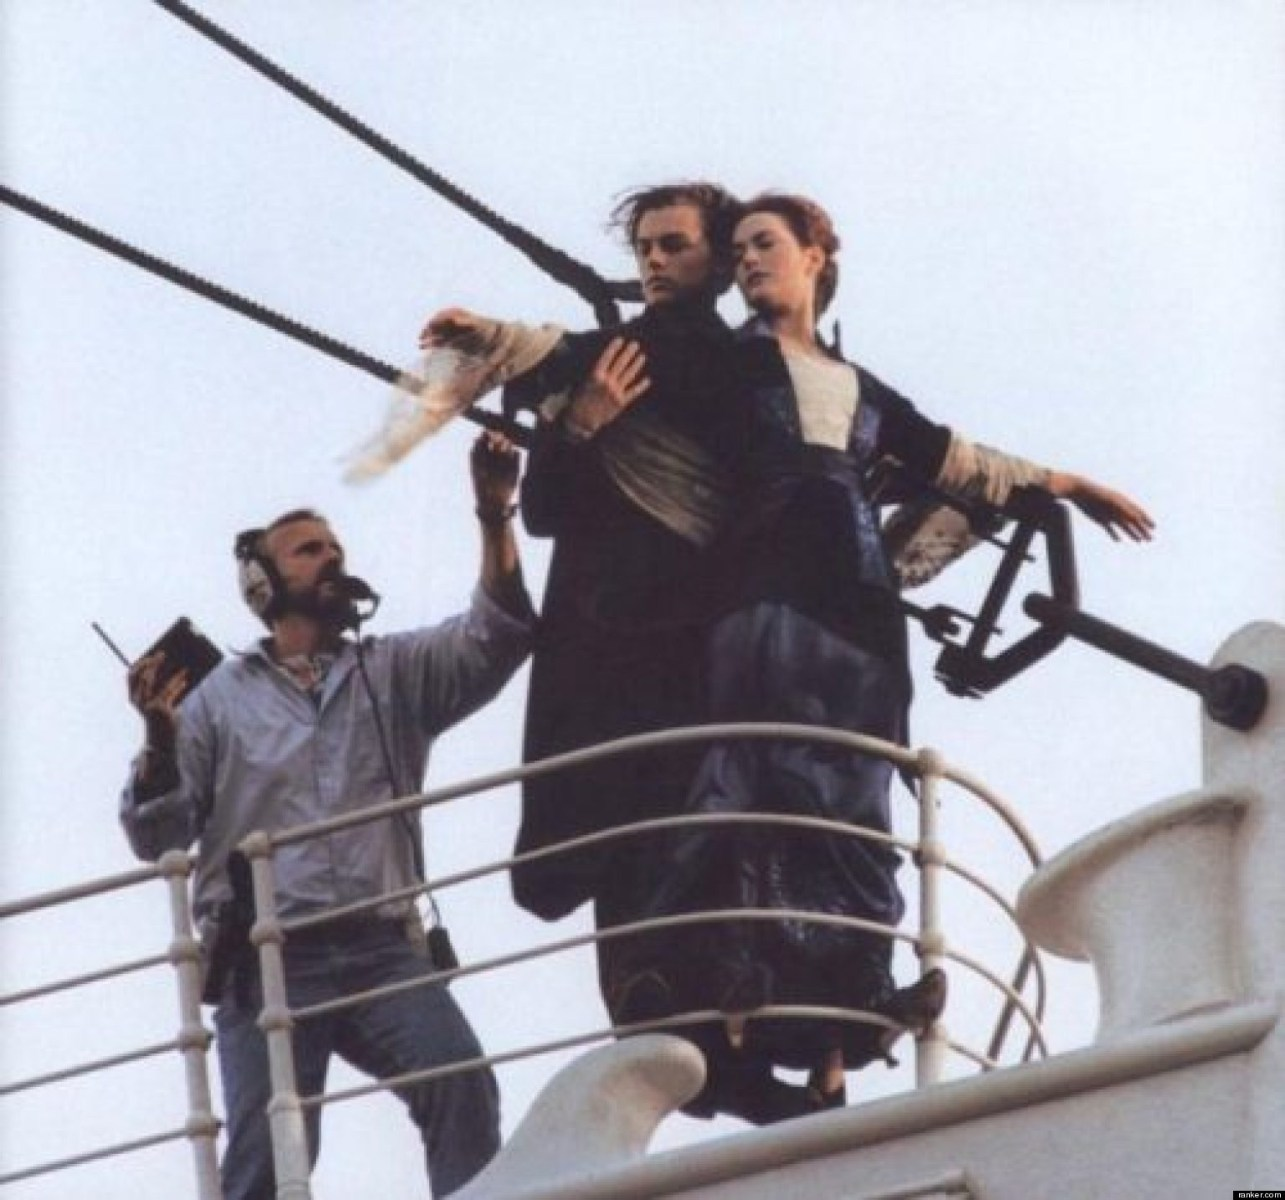 From The Film Titanic (1997) Behind the Scenes